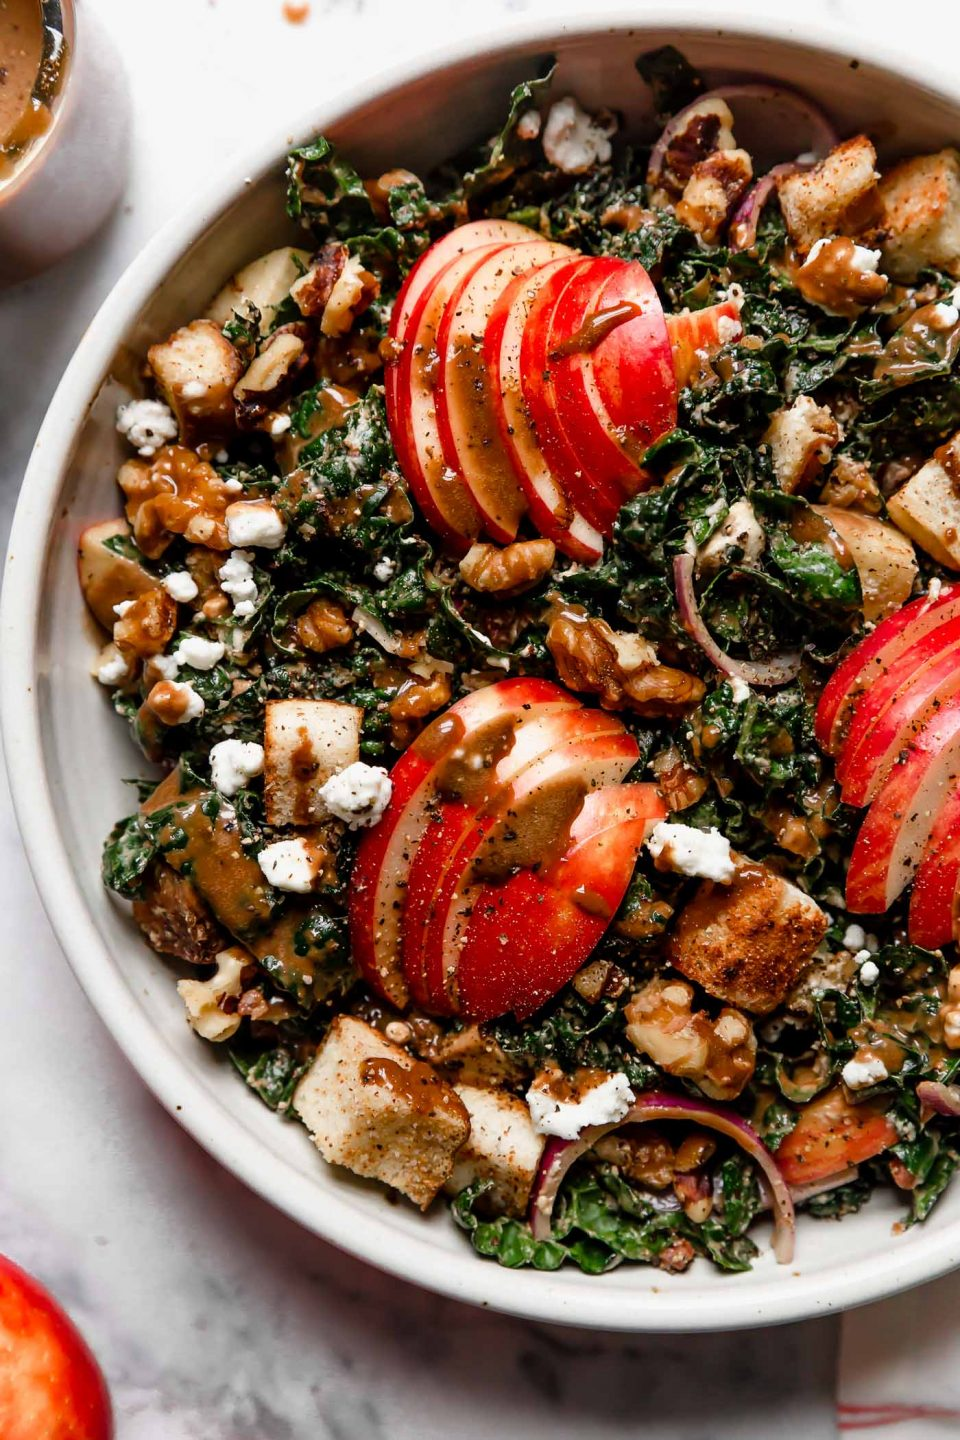 Tossed Autumn Kale salad in a cream ceramic bowl on a white marble surface. The salad is topped with clusters of sliced honeycrisp apples & croutons, & an extra drizzle of maple balsamic vinaigrette.